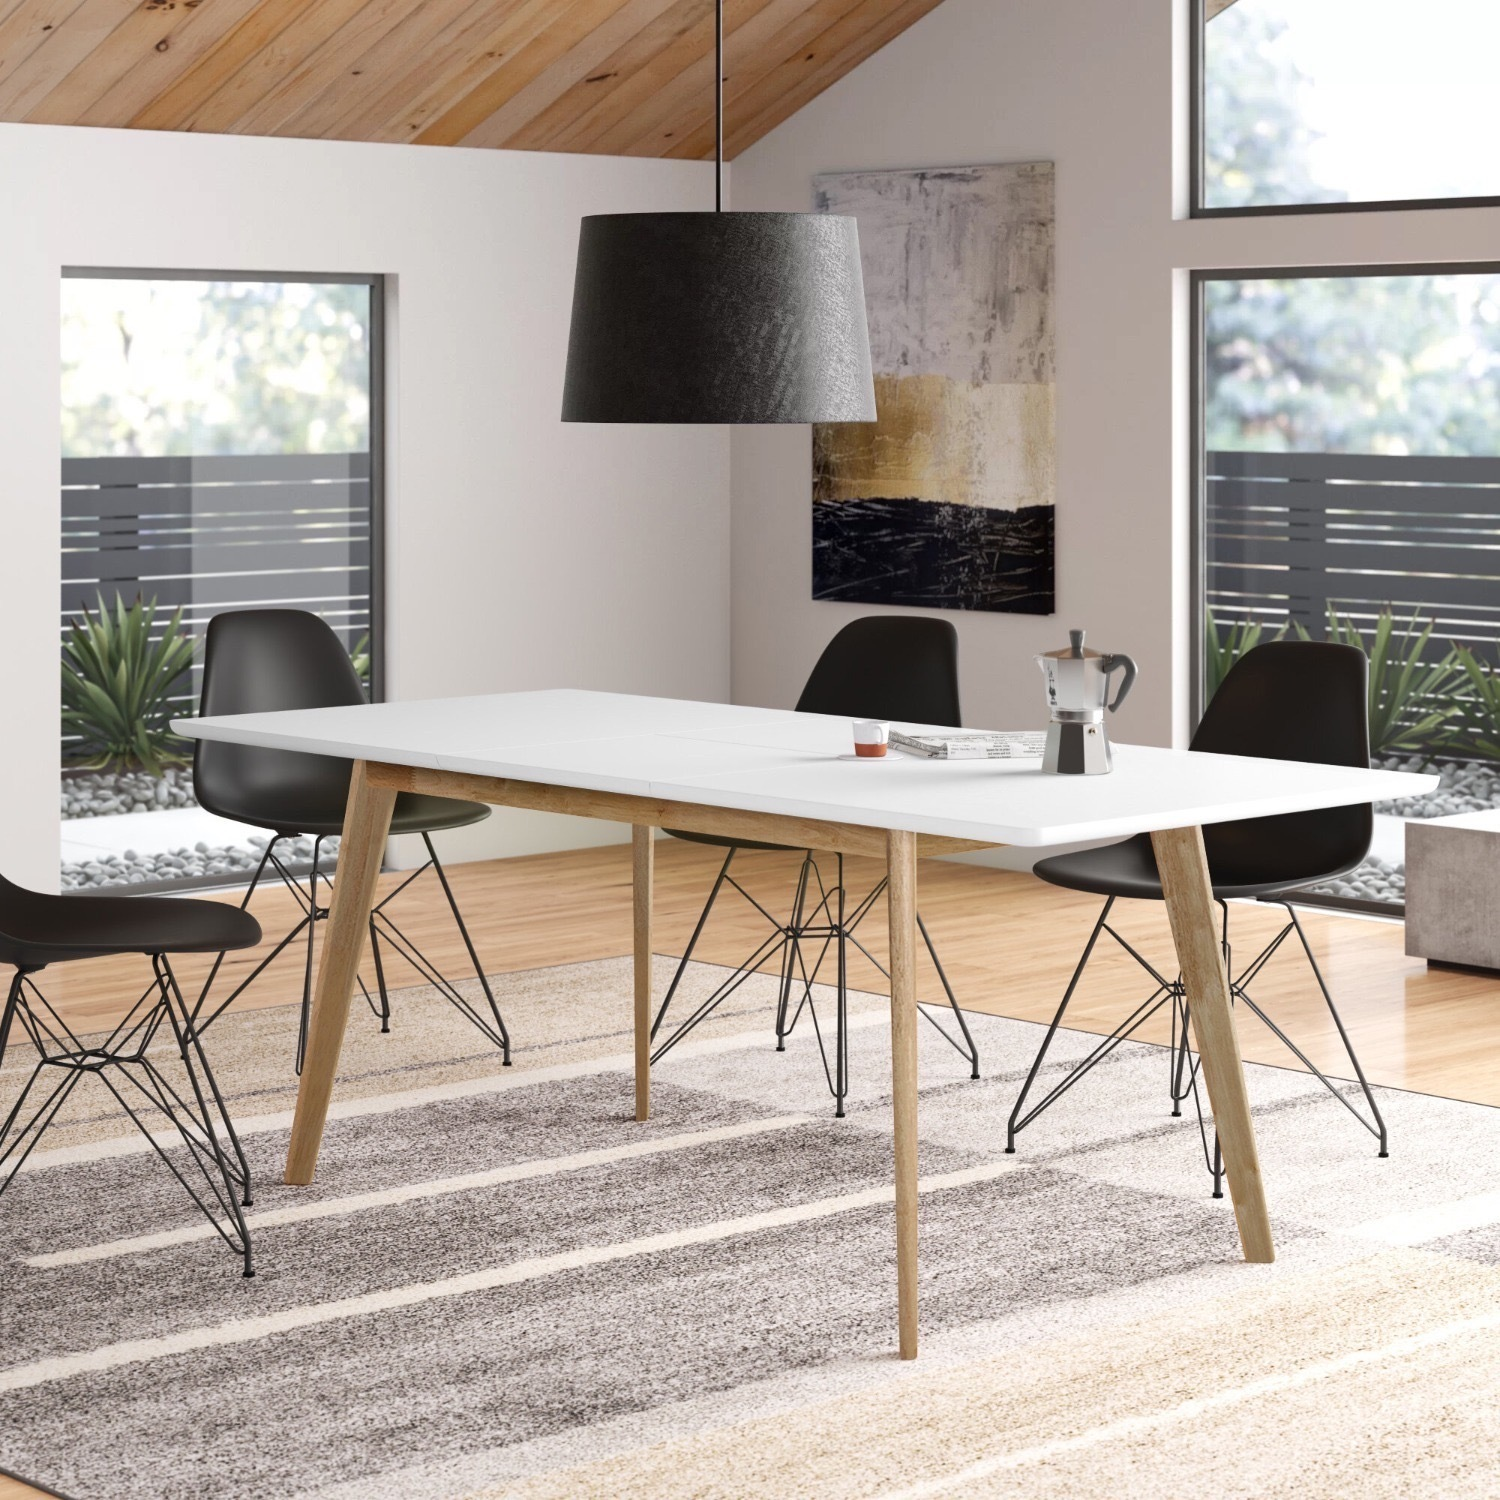 Wayfair Charming White All Modern Extendable Dining Table - image-1